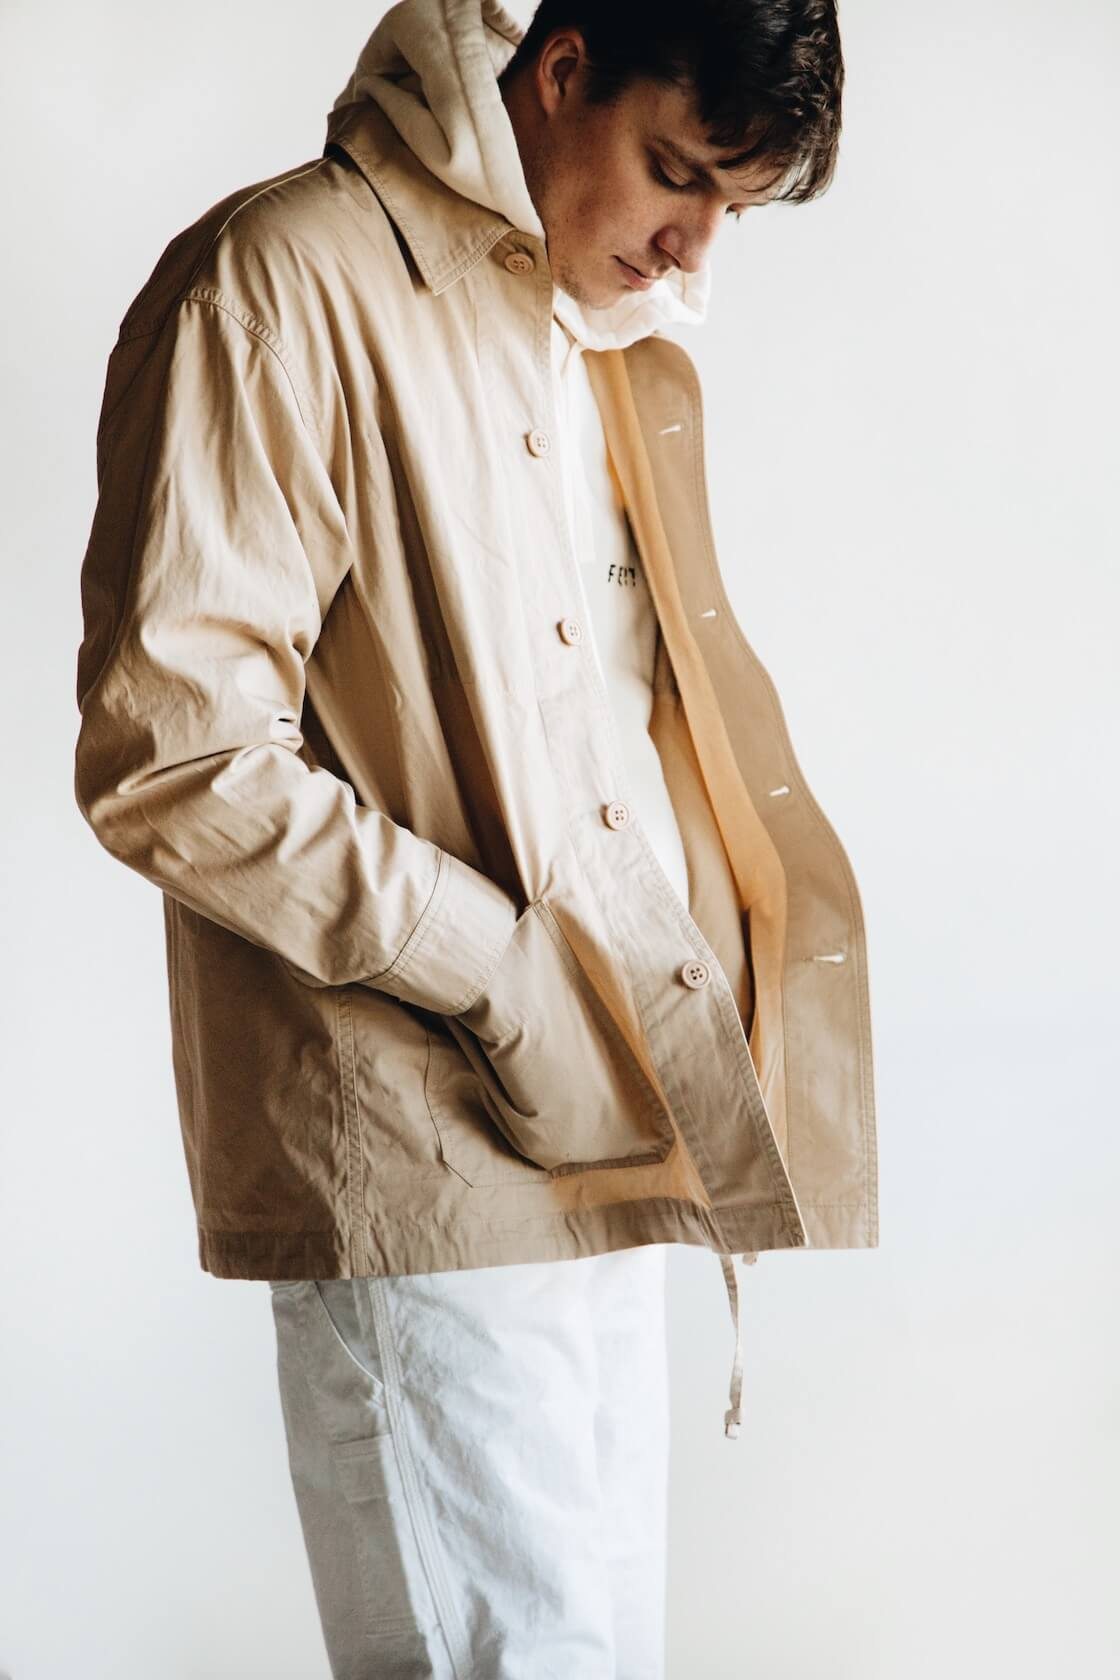 arpenteur corral jacket, feit tubular hooded sweatshirt, orslow painter pants on body